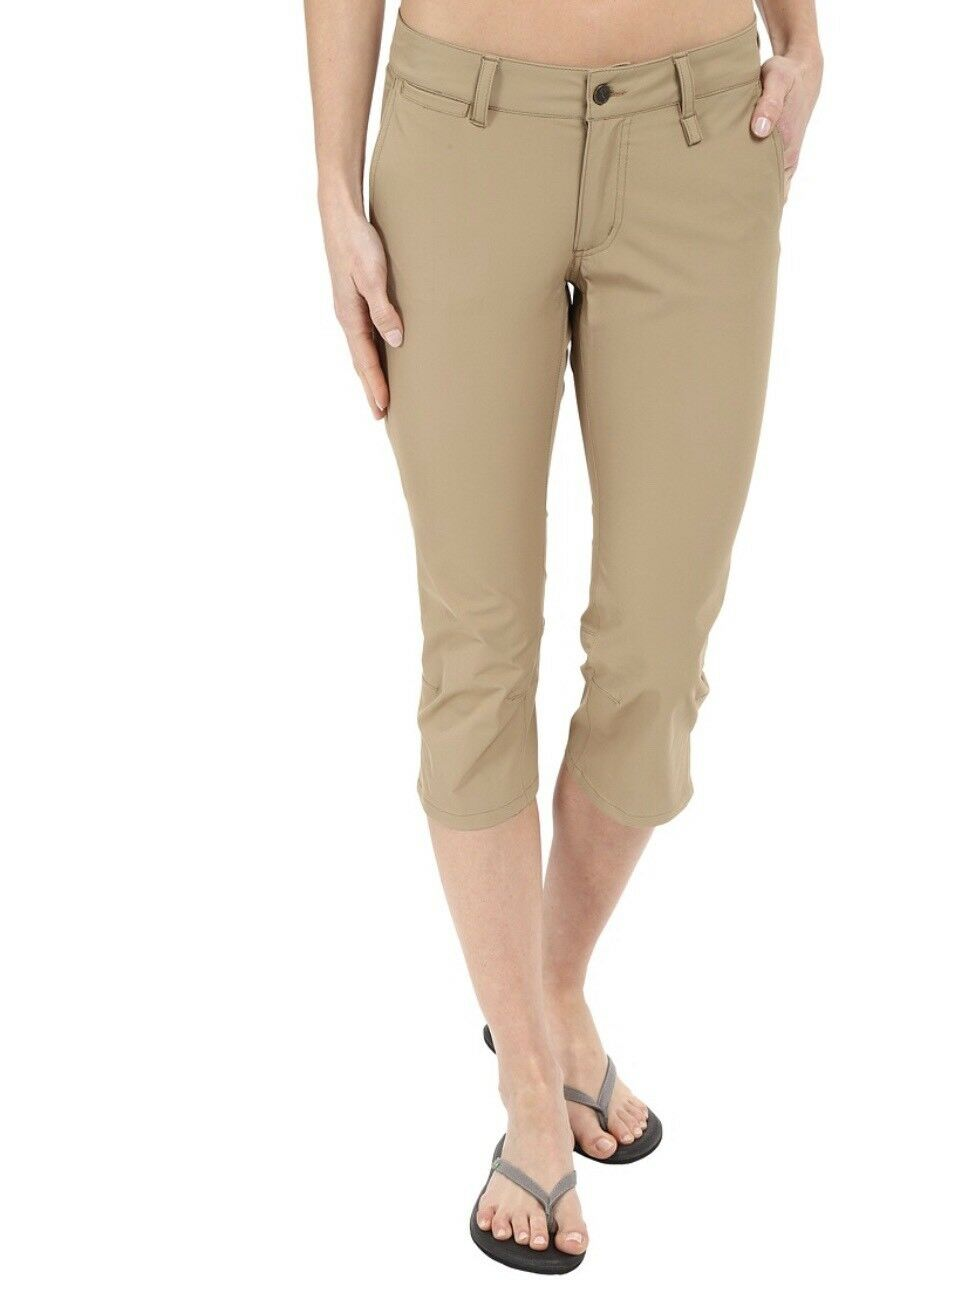 Fjallraven Abisko Capris Trousers Sand Tan Pants Hiking Size 40 US 16, 46 US 10